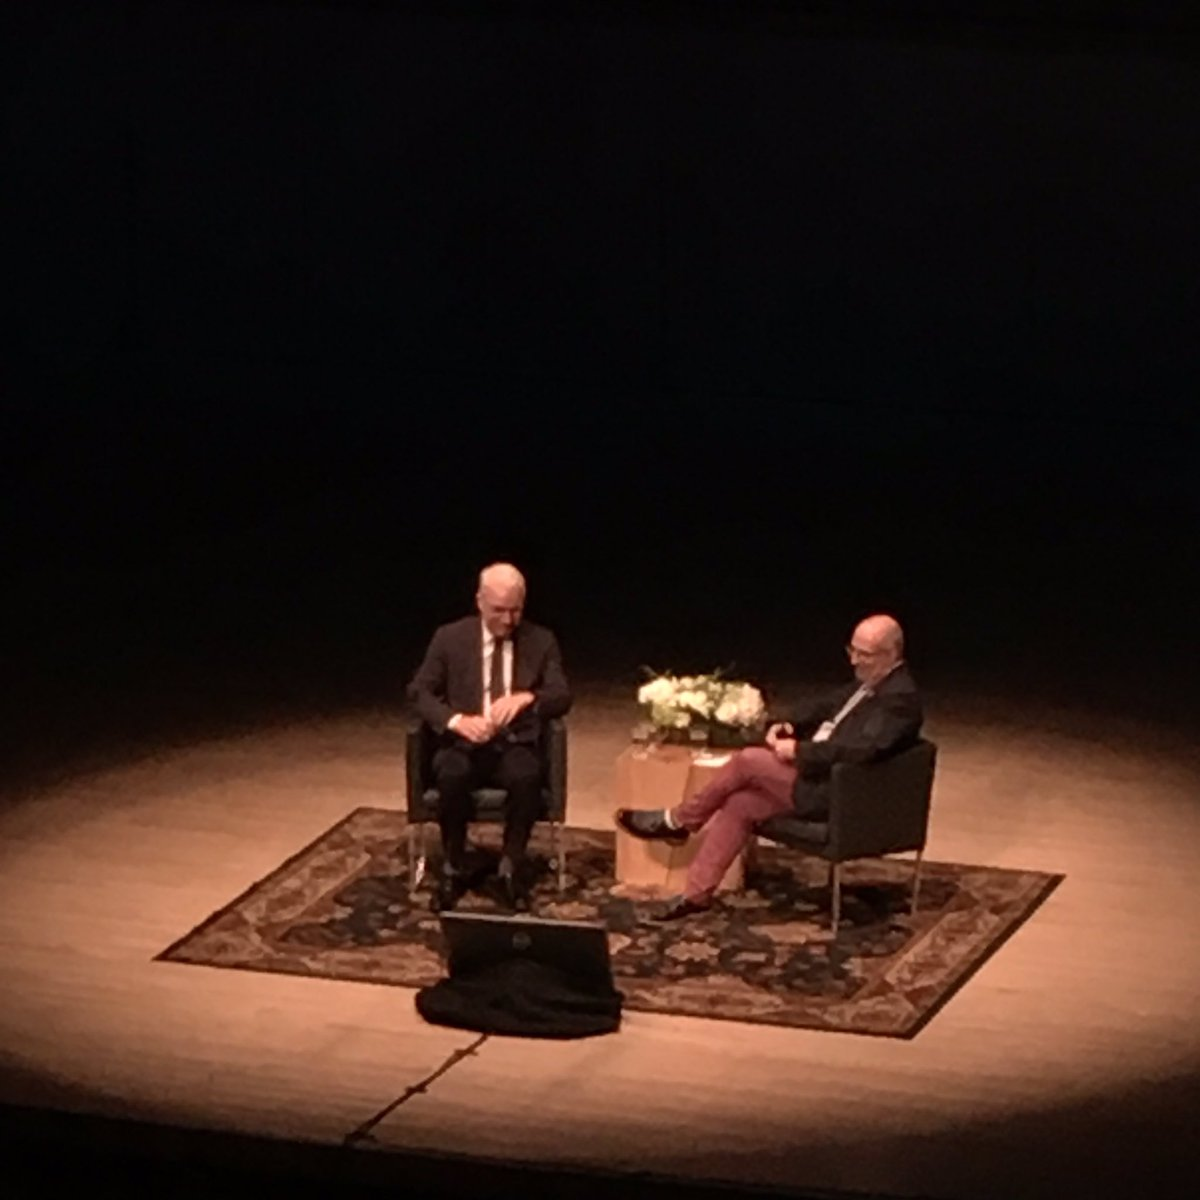 Steve Martin in conversation with @agotoronto curator Andrew Hunter. Part art talk, part standup show. #HarrisAGO https://t.co/eJrsqP6hWI